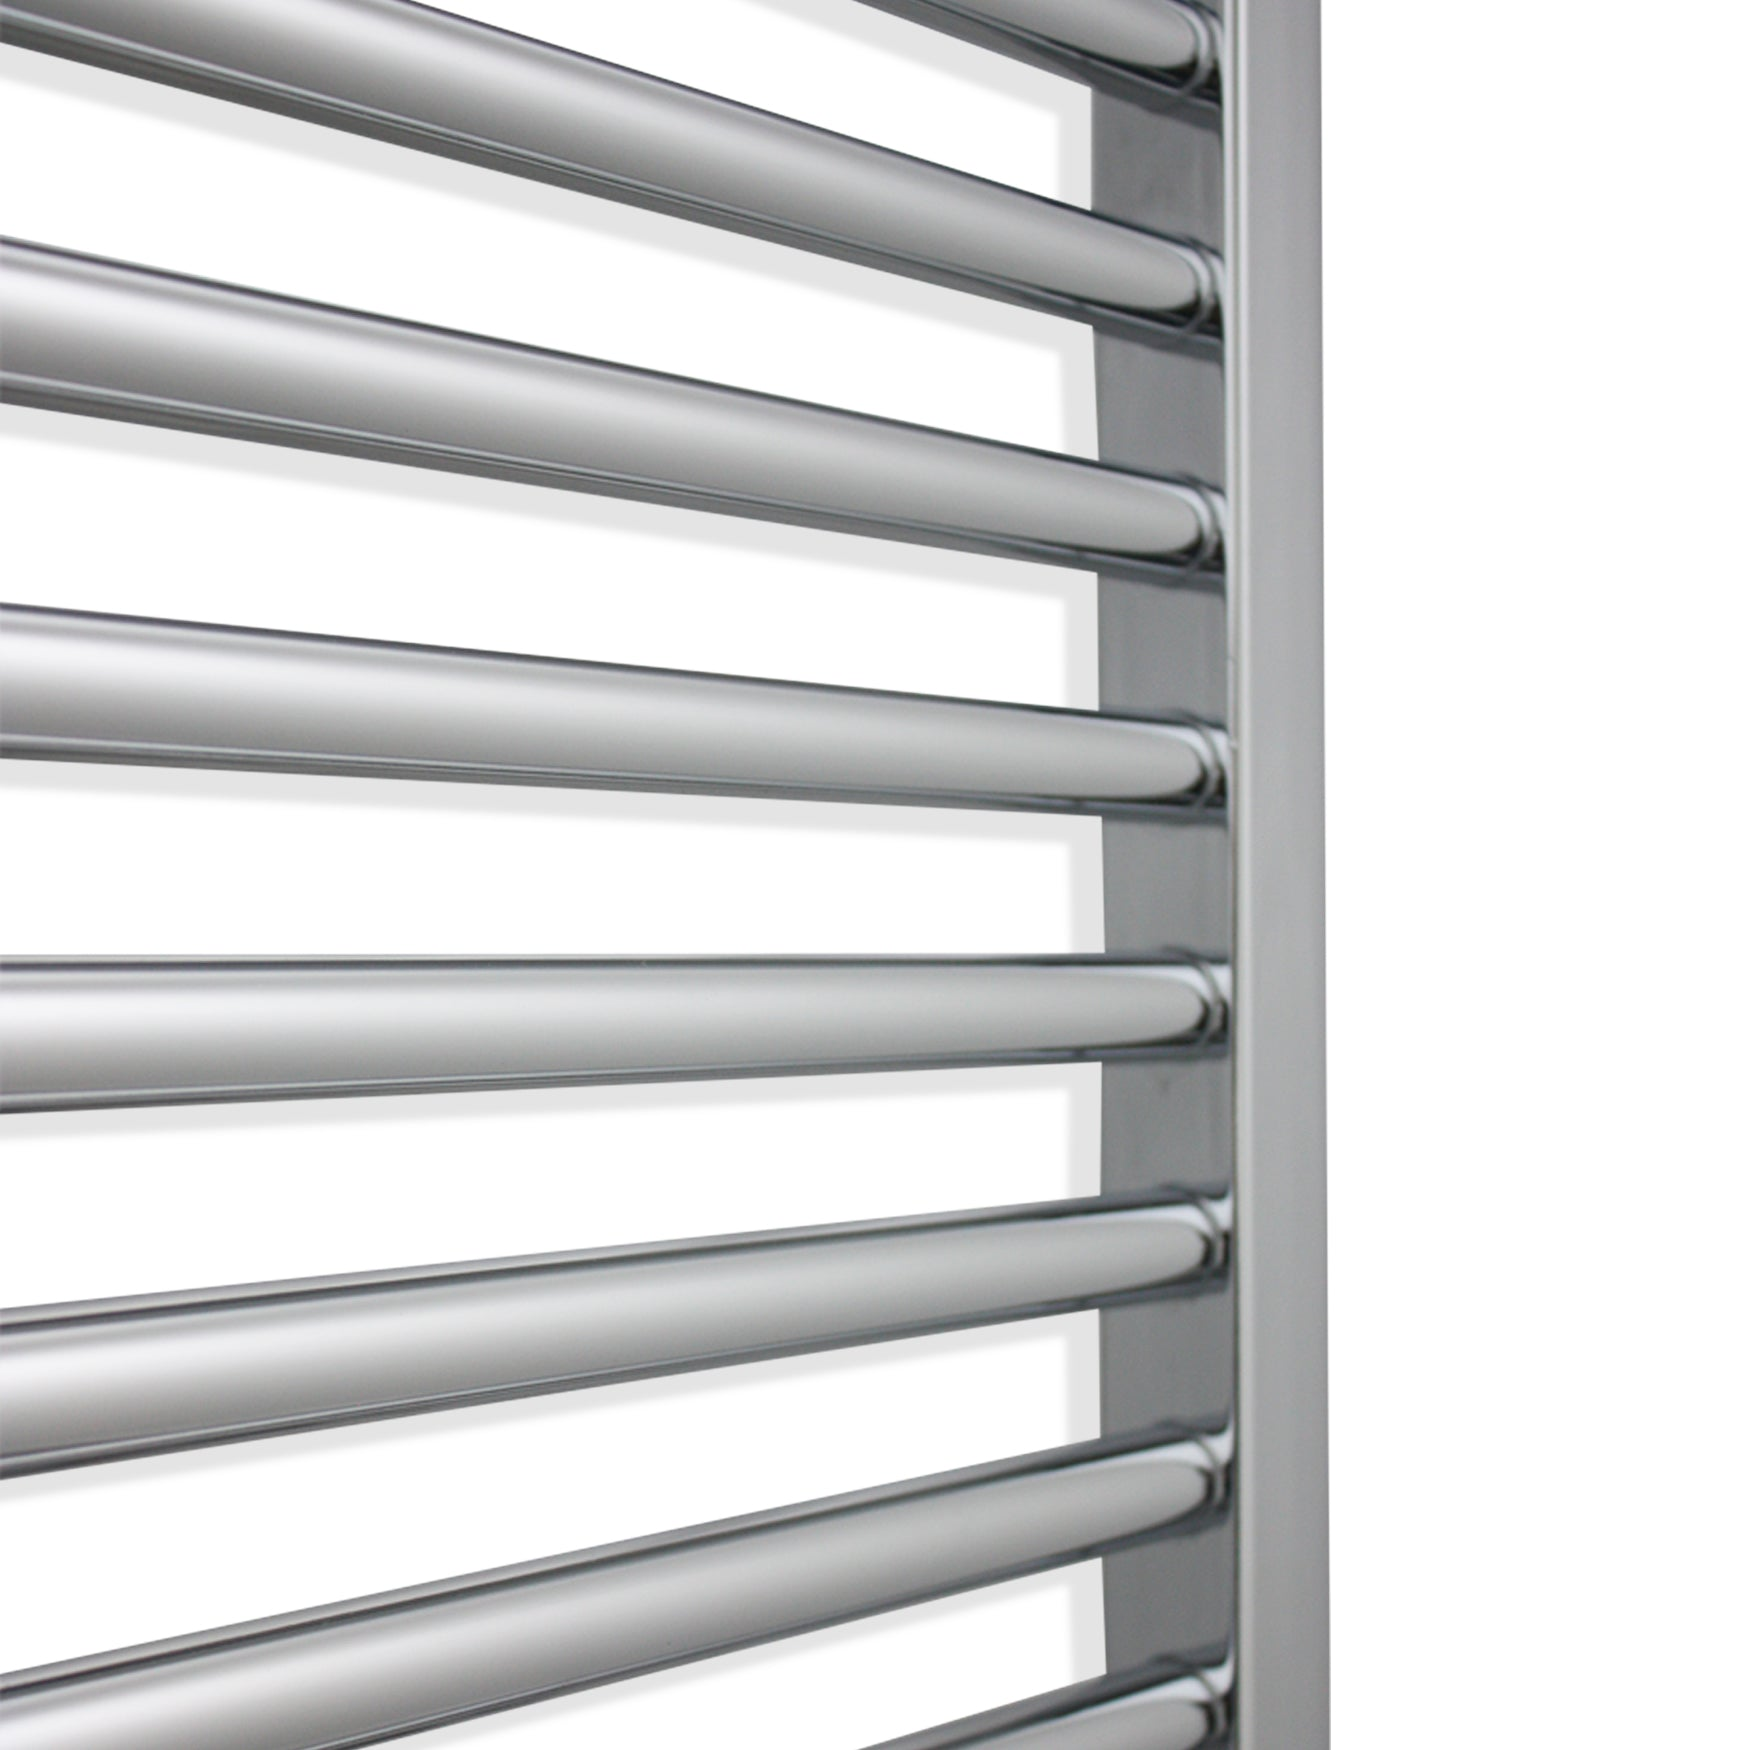 450mm Wide 400mm High Flat Chrome Heated Towel Rail Radiator HTR